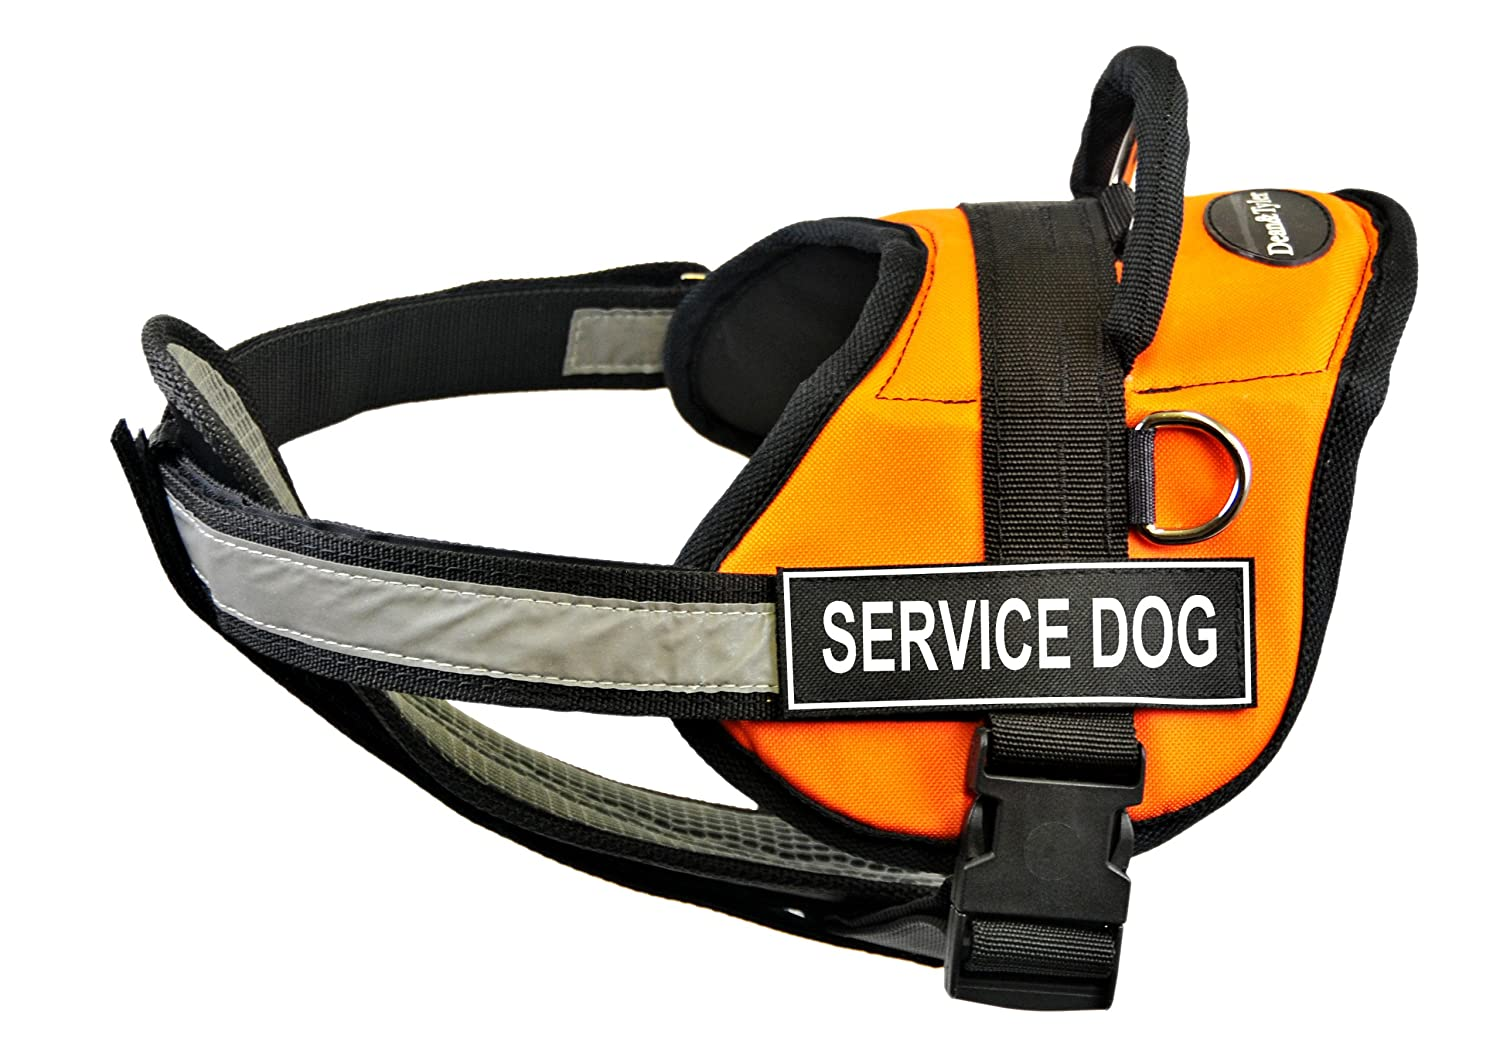 Dean & Tyler 25-Inch to 34-Inch Service Dog Harness with Padded Reflective Chest Straps, Small, orange Black